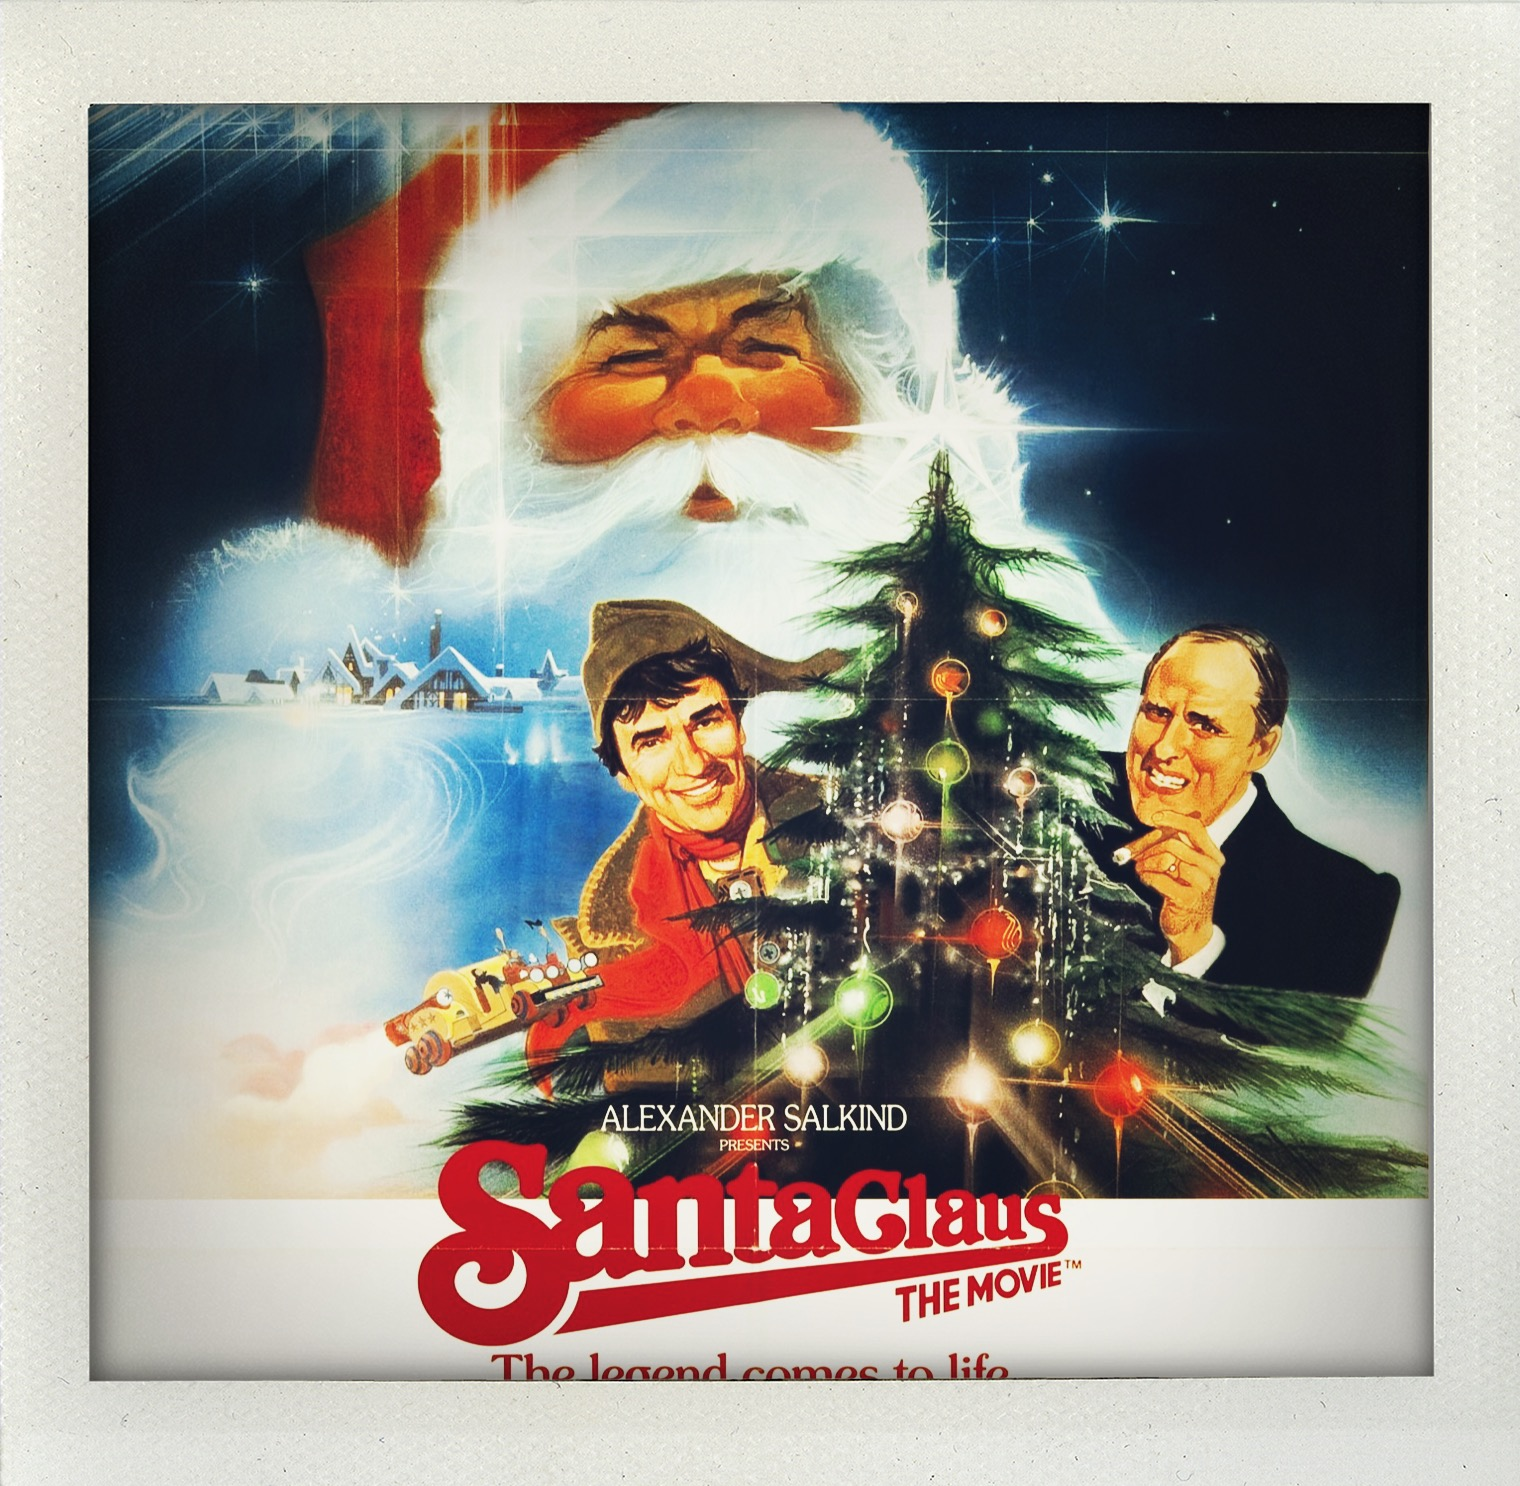 1985 in Film – Santa Claus The Movie – A Bad Education